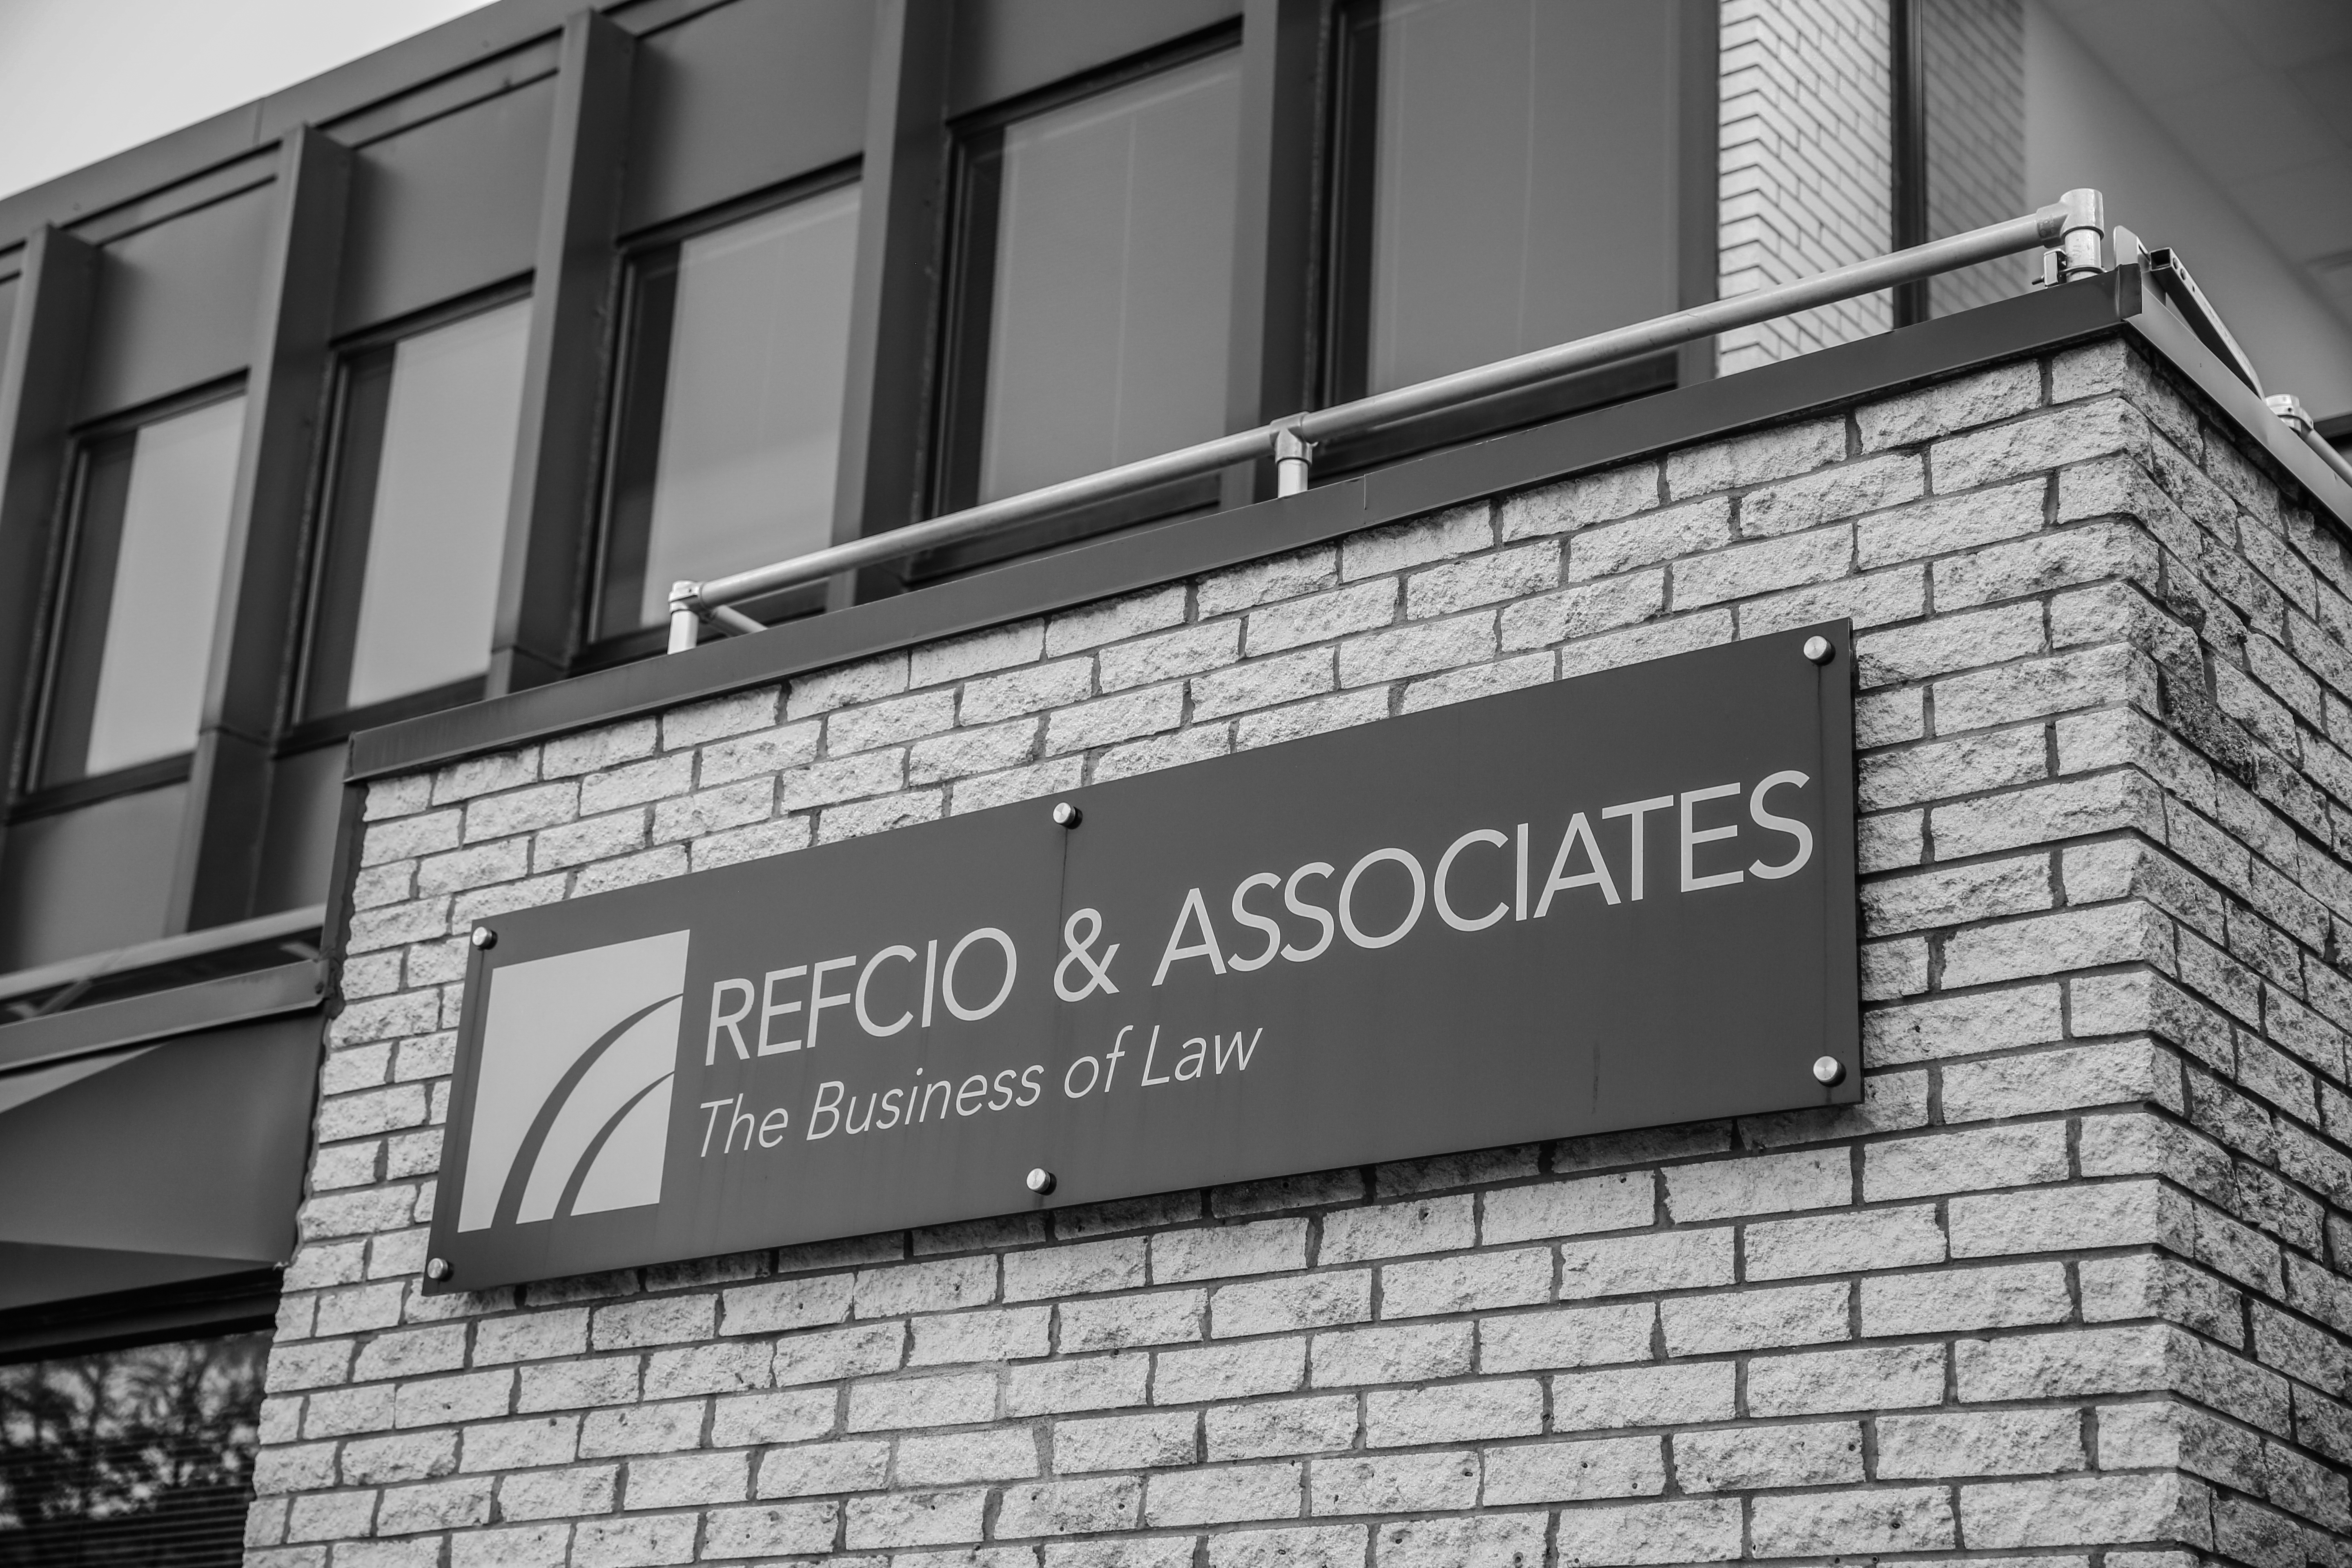 Refcio London's Office Sign for flat rate fee lawyers